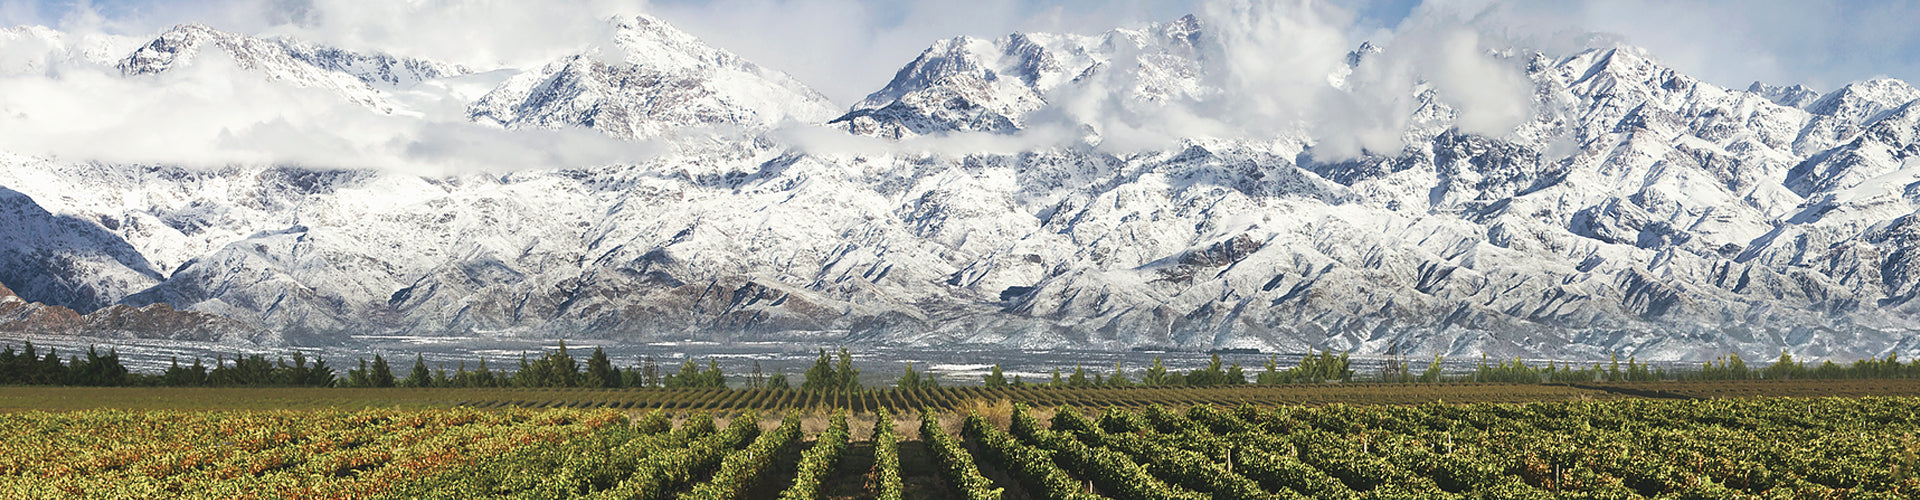 Argentinian Vineyards in Mendoza in front of the Andes